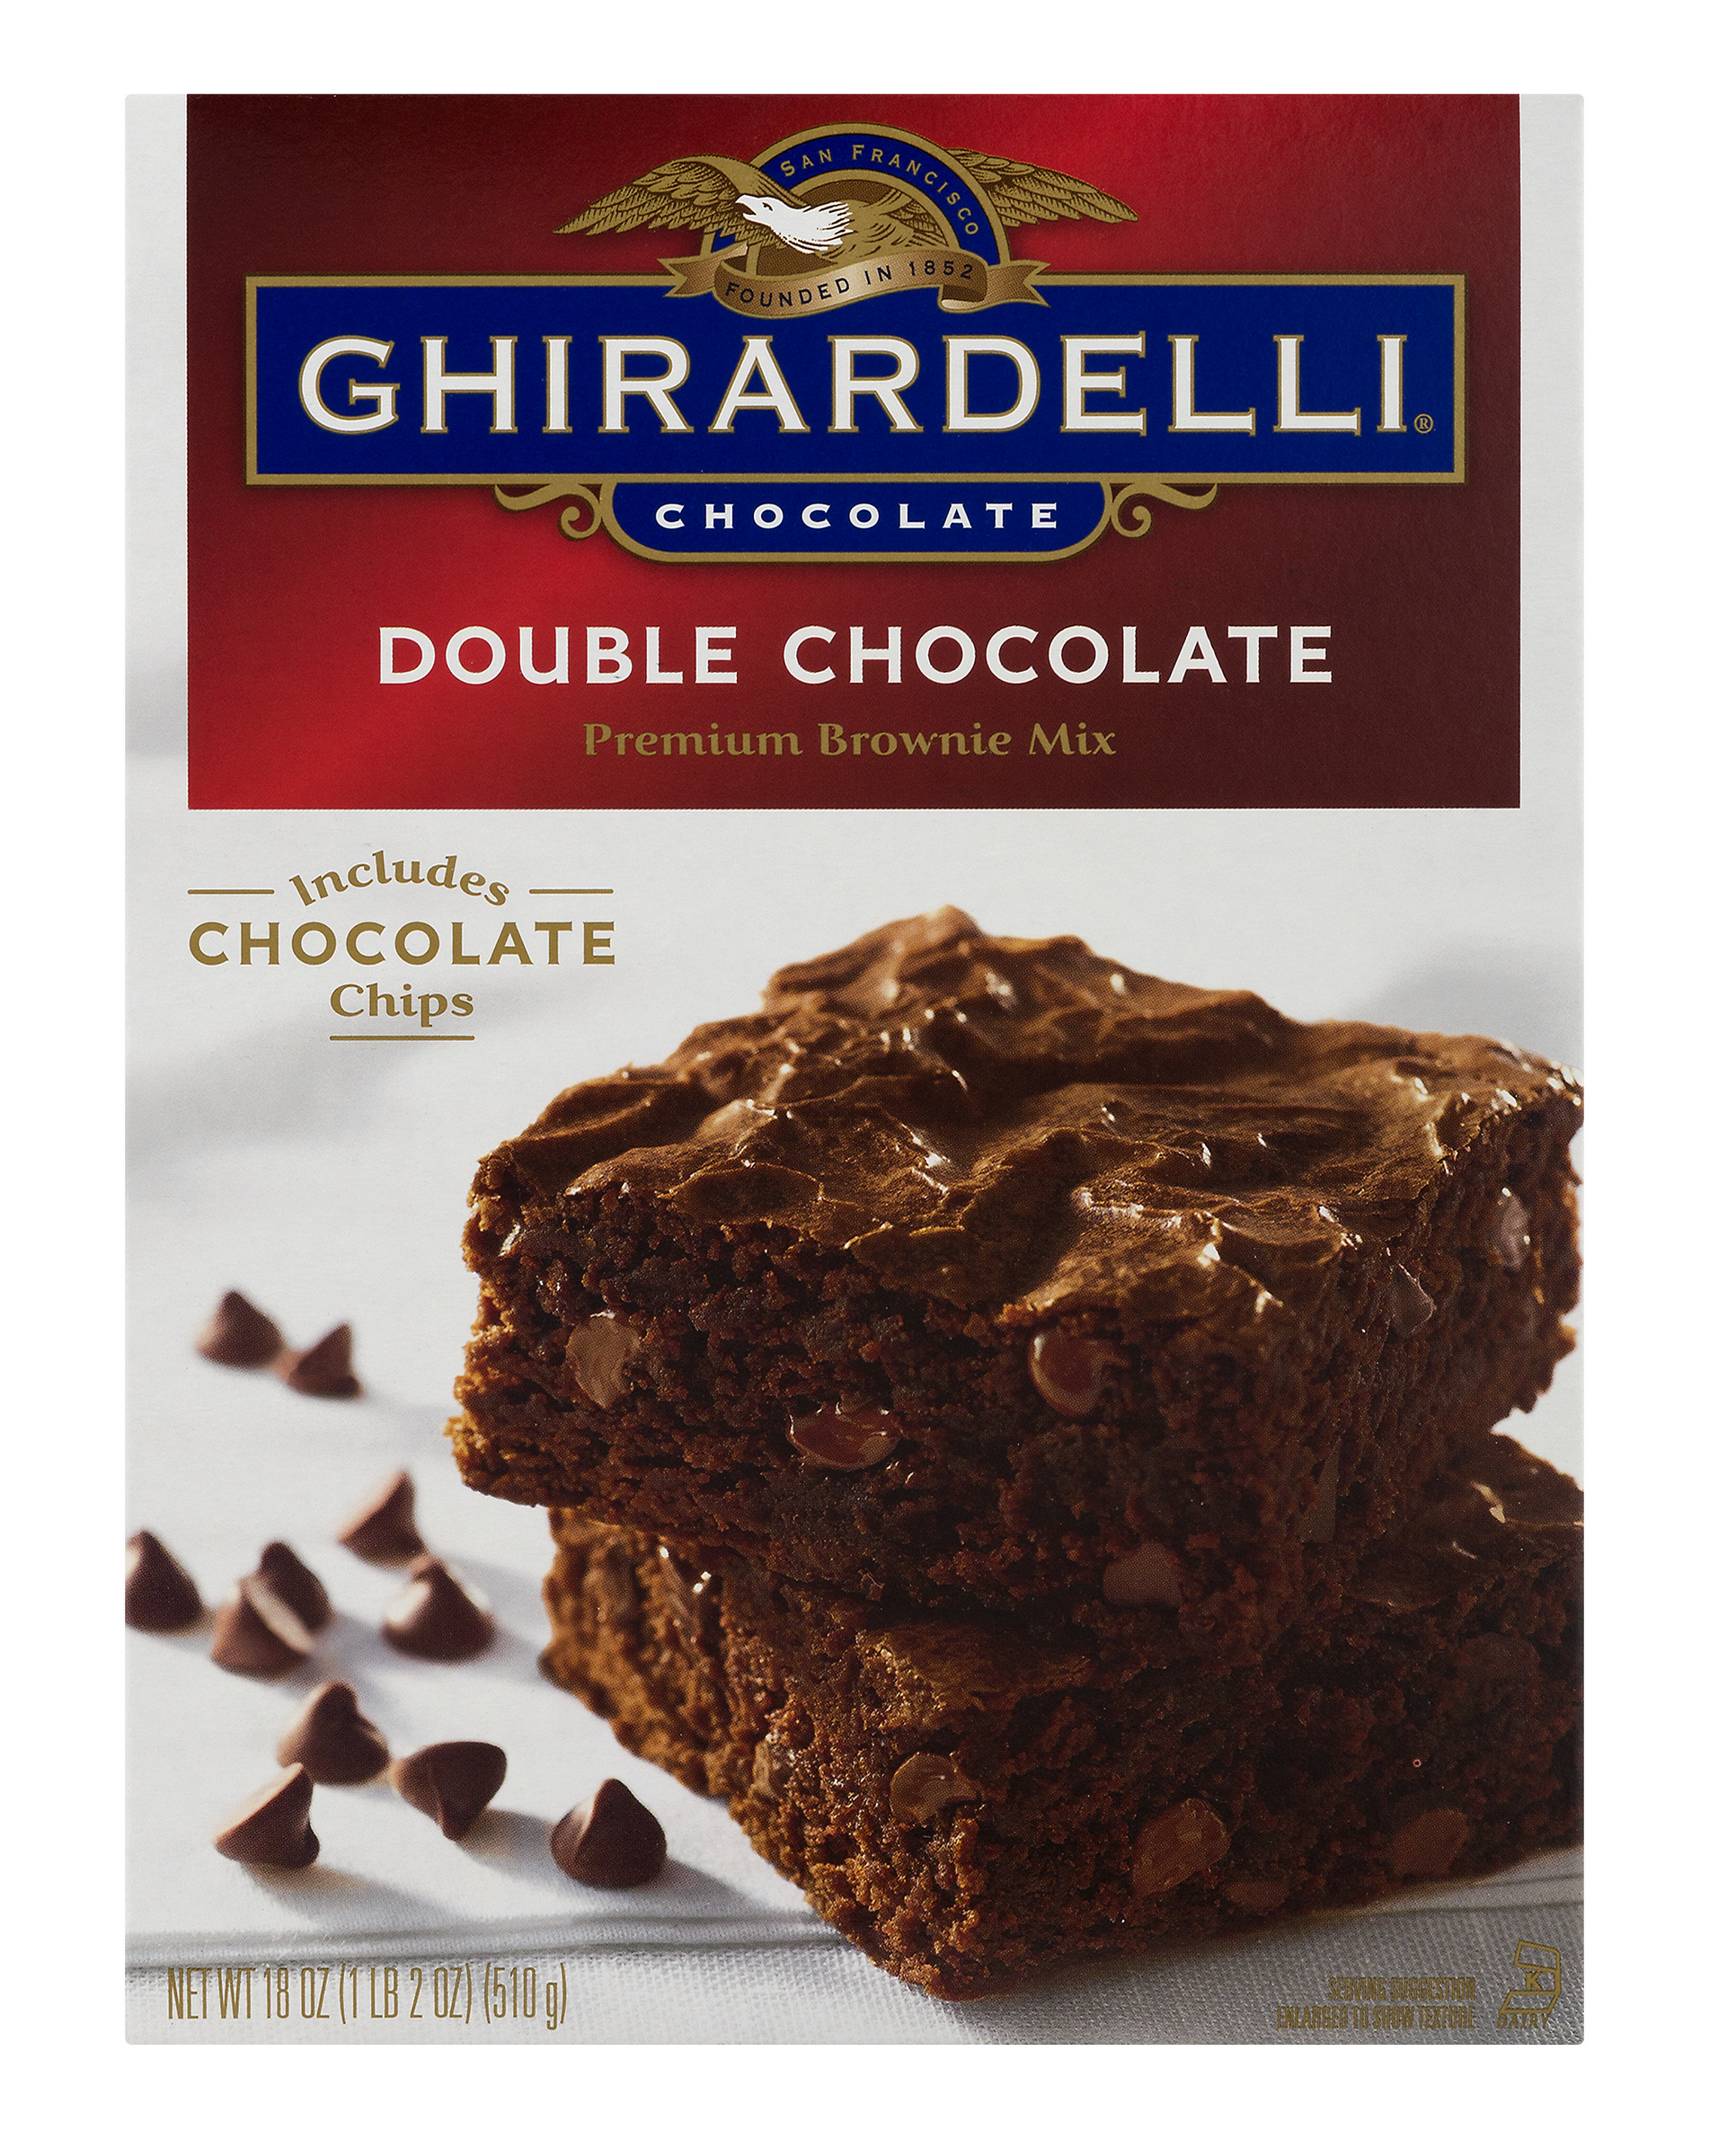 Ghirardelli Premium Brownie Mix Double Chocolate